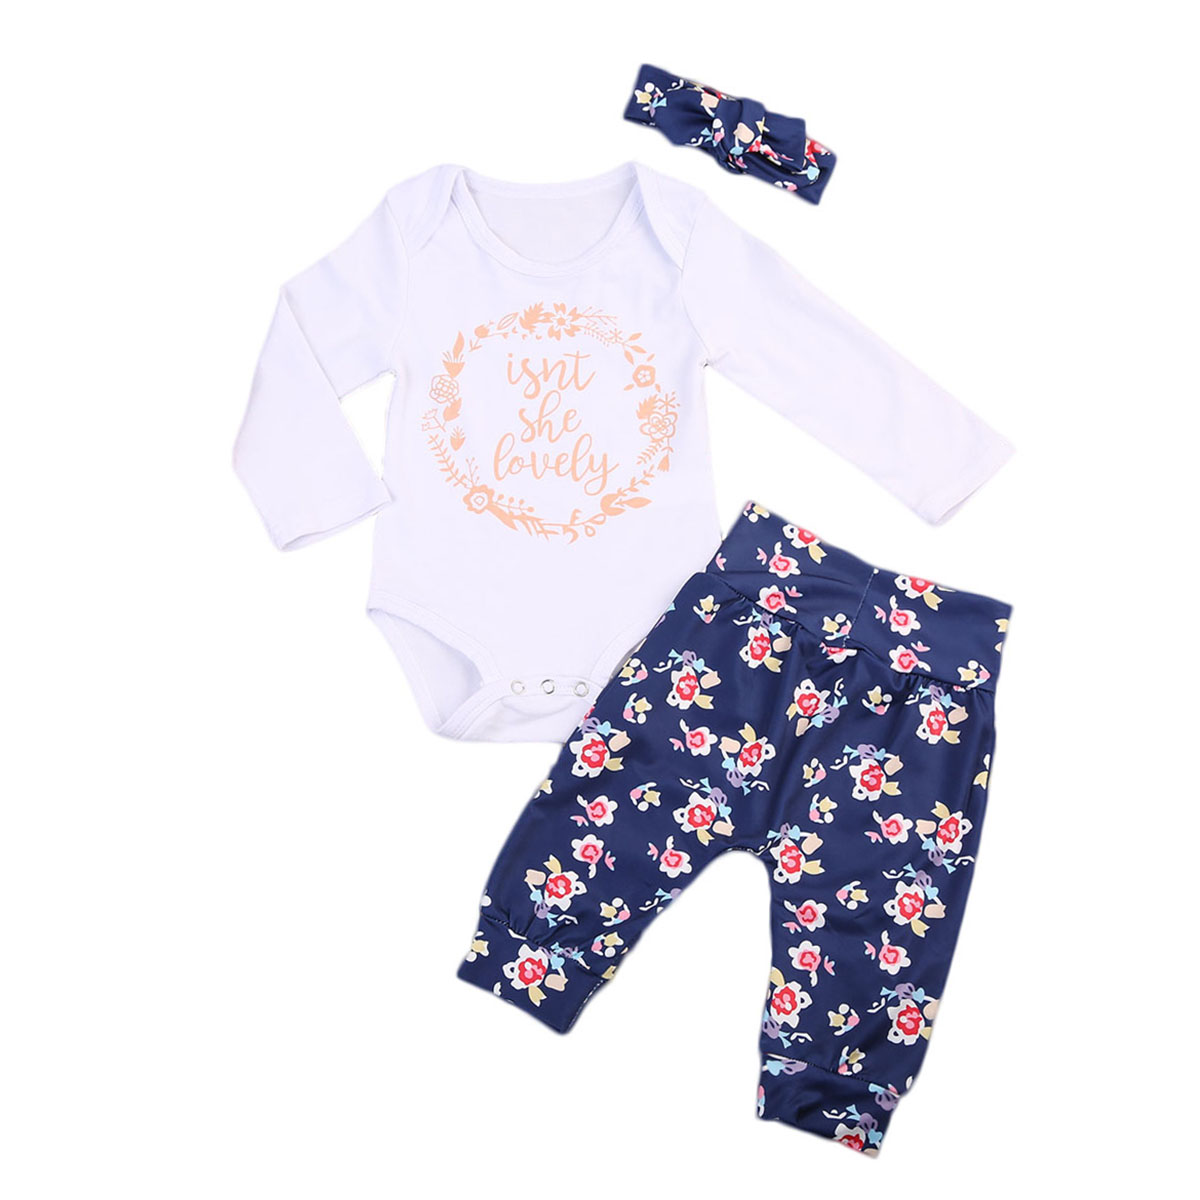 3PCS Newborn Baby Girl Clothes Set Long Sleeve Letter Print Cotton Romper Bodysuit +Floral Long Pant Headband Outfit Bebek Giyim 2017 floral baby romper newborn baby girl clothes ruffles sleeve bodysuit headband 2pcs outfit bebek giyim sunsuit 0 24m